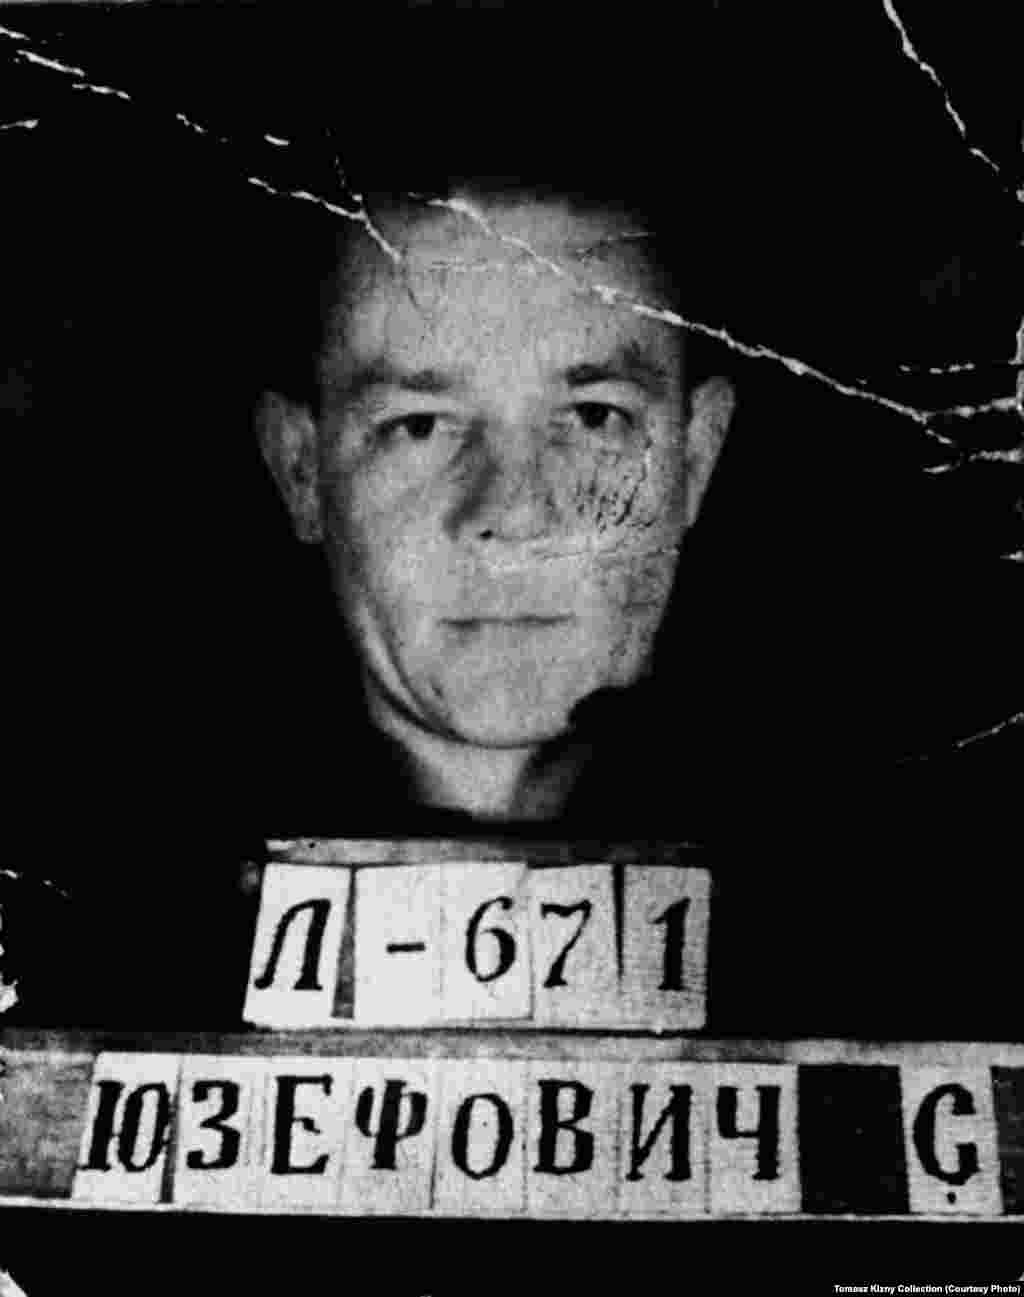 An undated photo of Polish Home Army soldier Stefan Jozefowicz, who was arrested by the Soviet secret police in 1945 and sentenced to death. That sentence was later commuted to 20 years of hard labor. In 1953, Jozefowicz participated in a prisoner strike at mine No. 29. He returned to Poland in 1956.